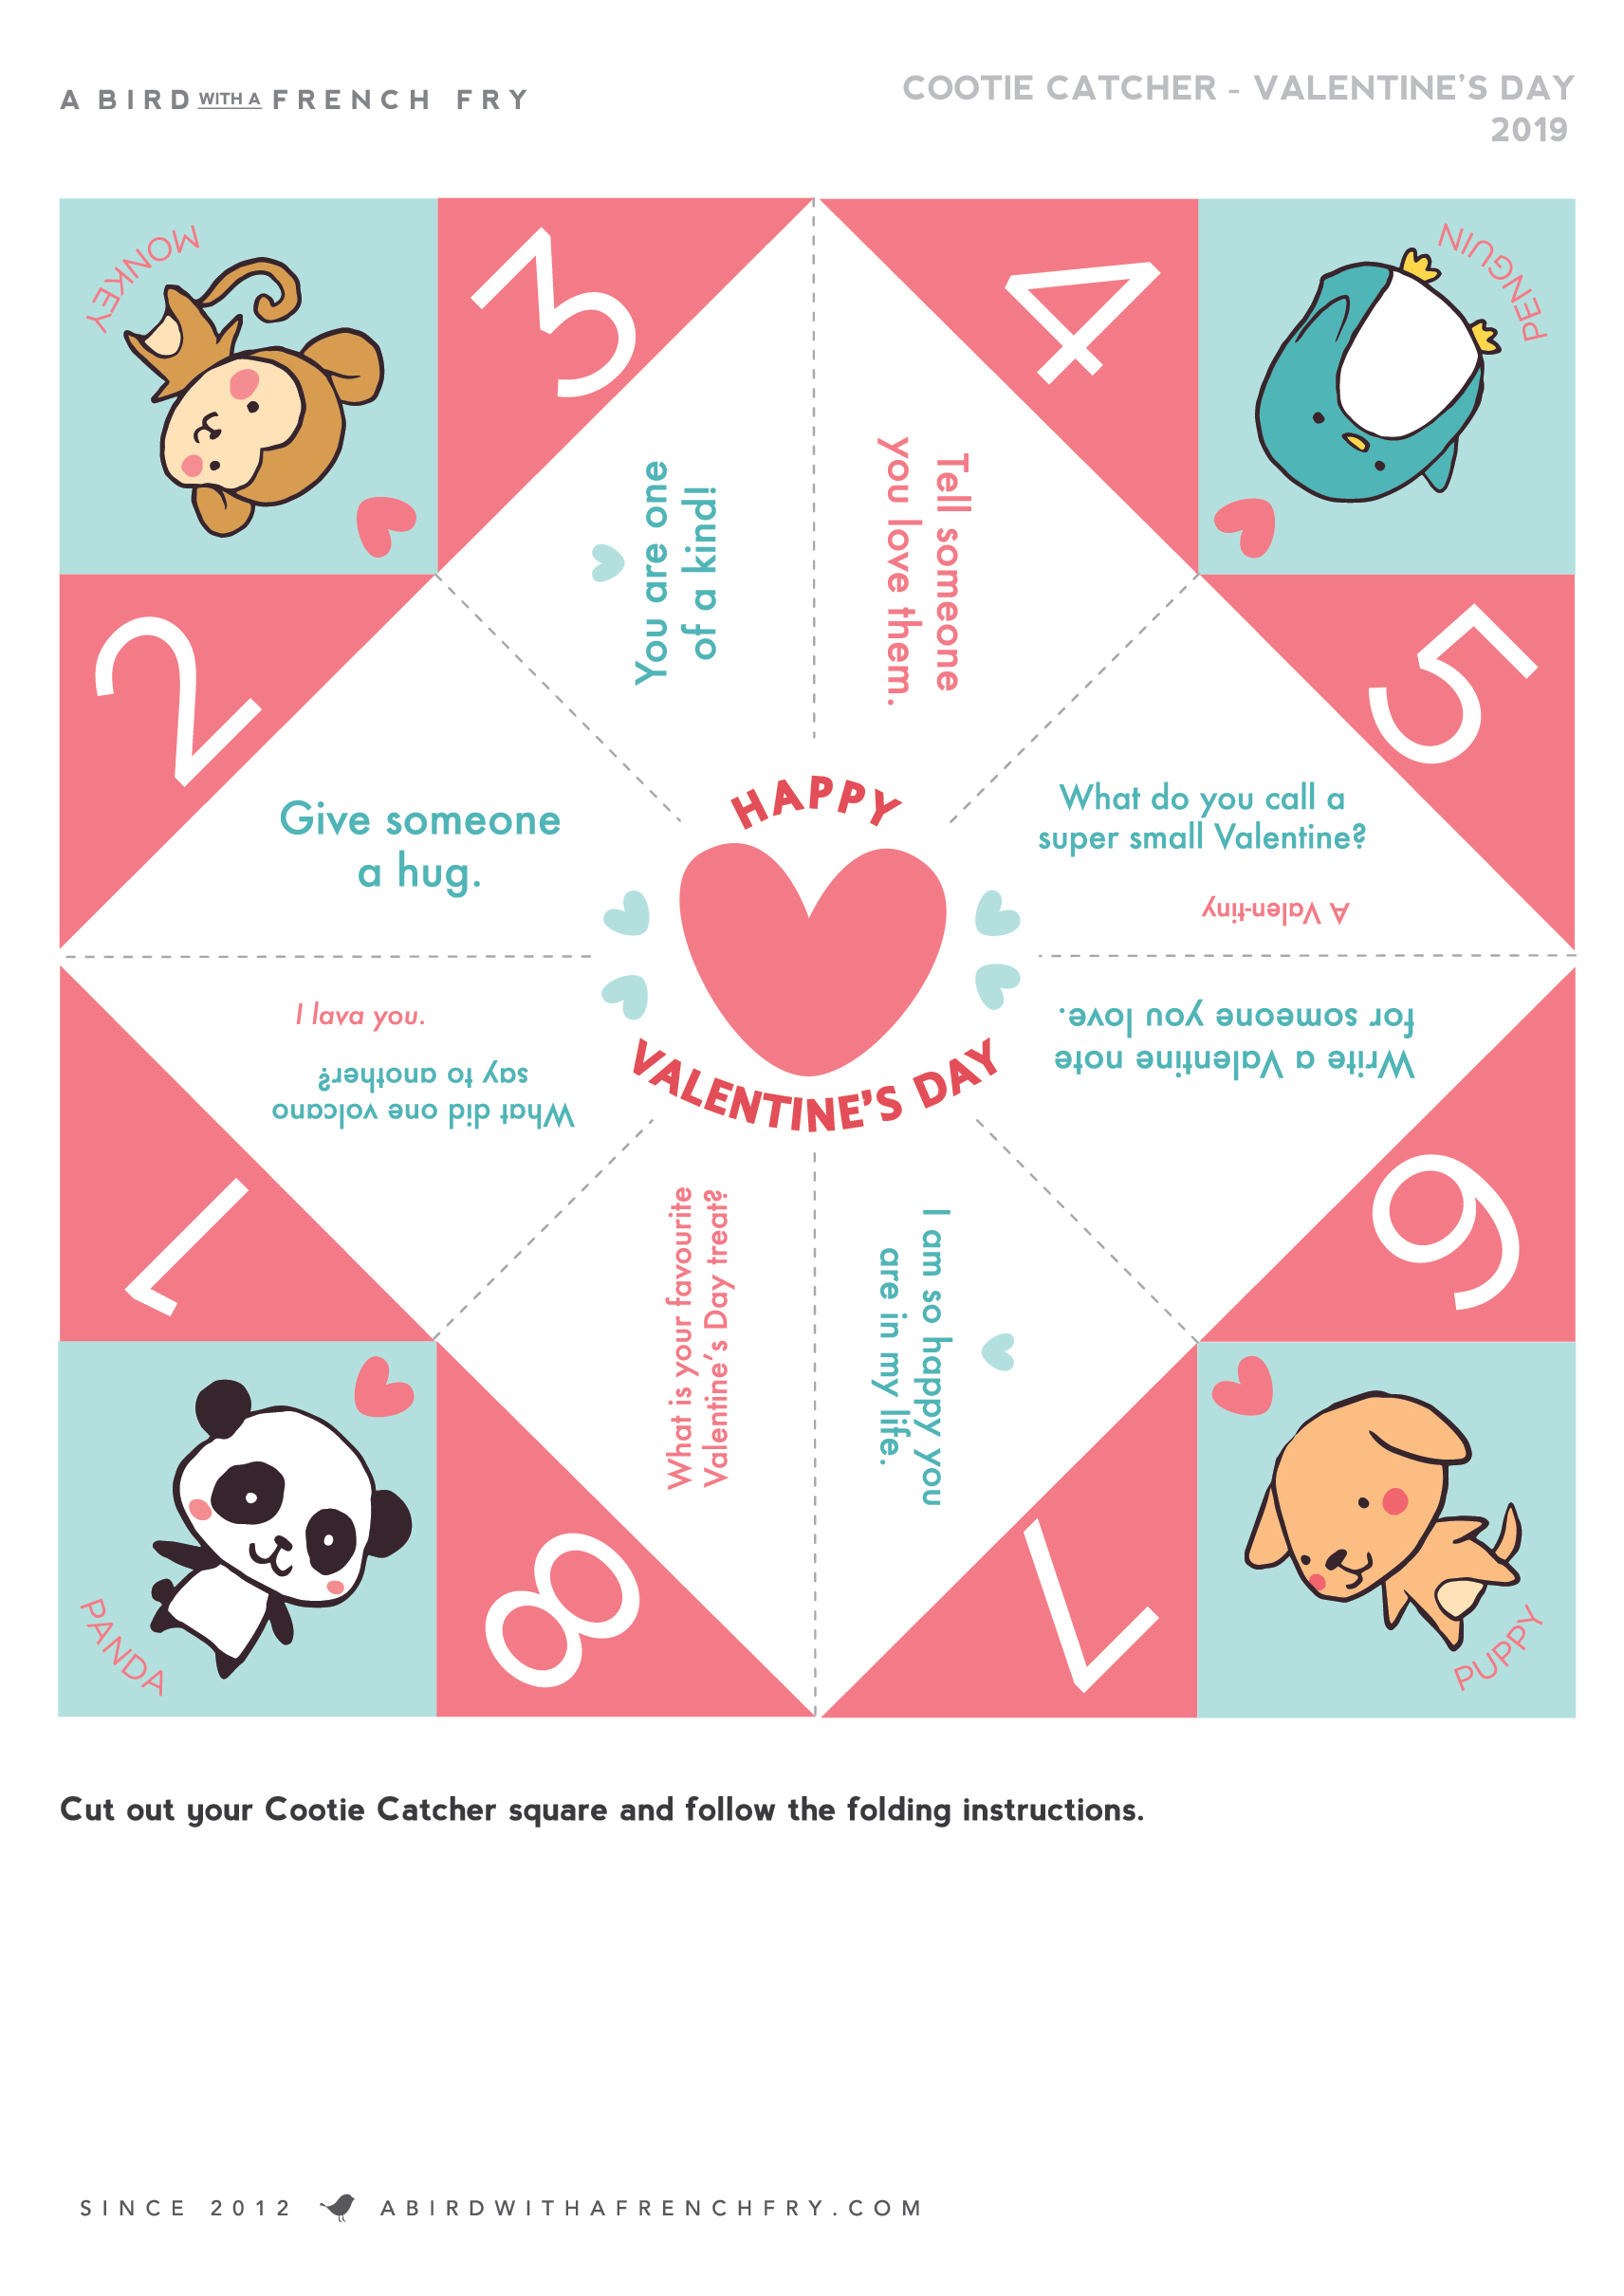 picture regarding Printable Cootie Catcher Template called Valentines Working day Cootie Catcher Cost-free Printable